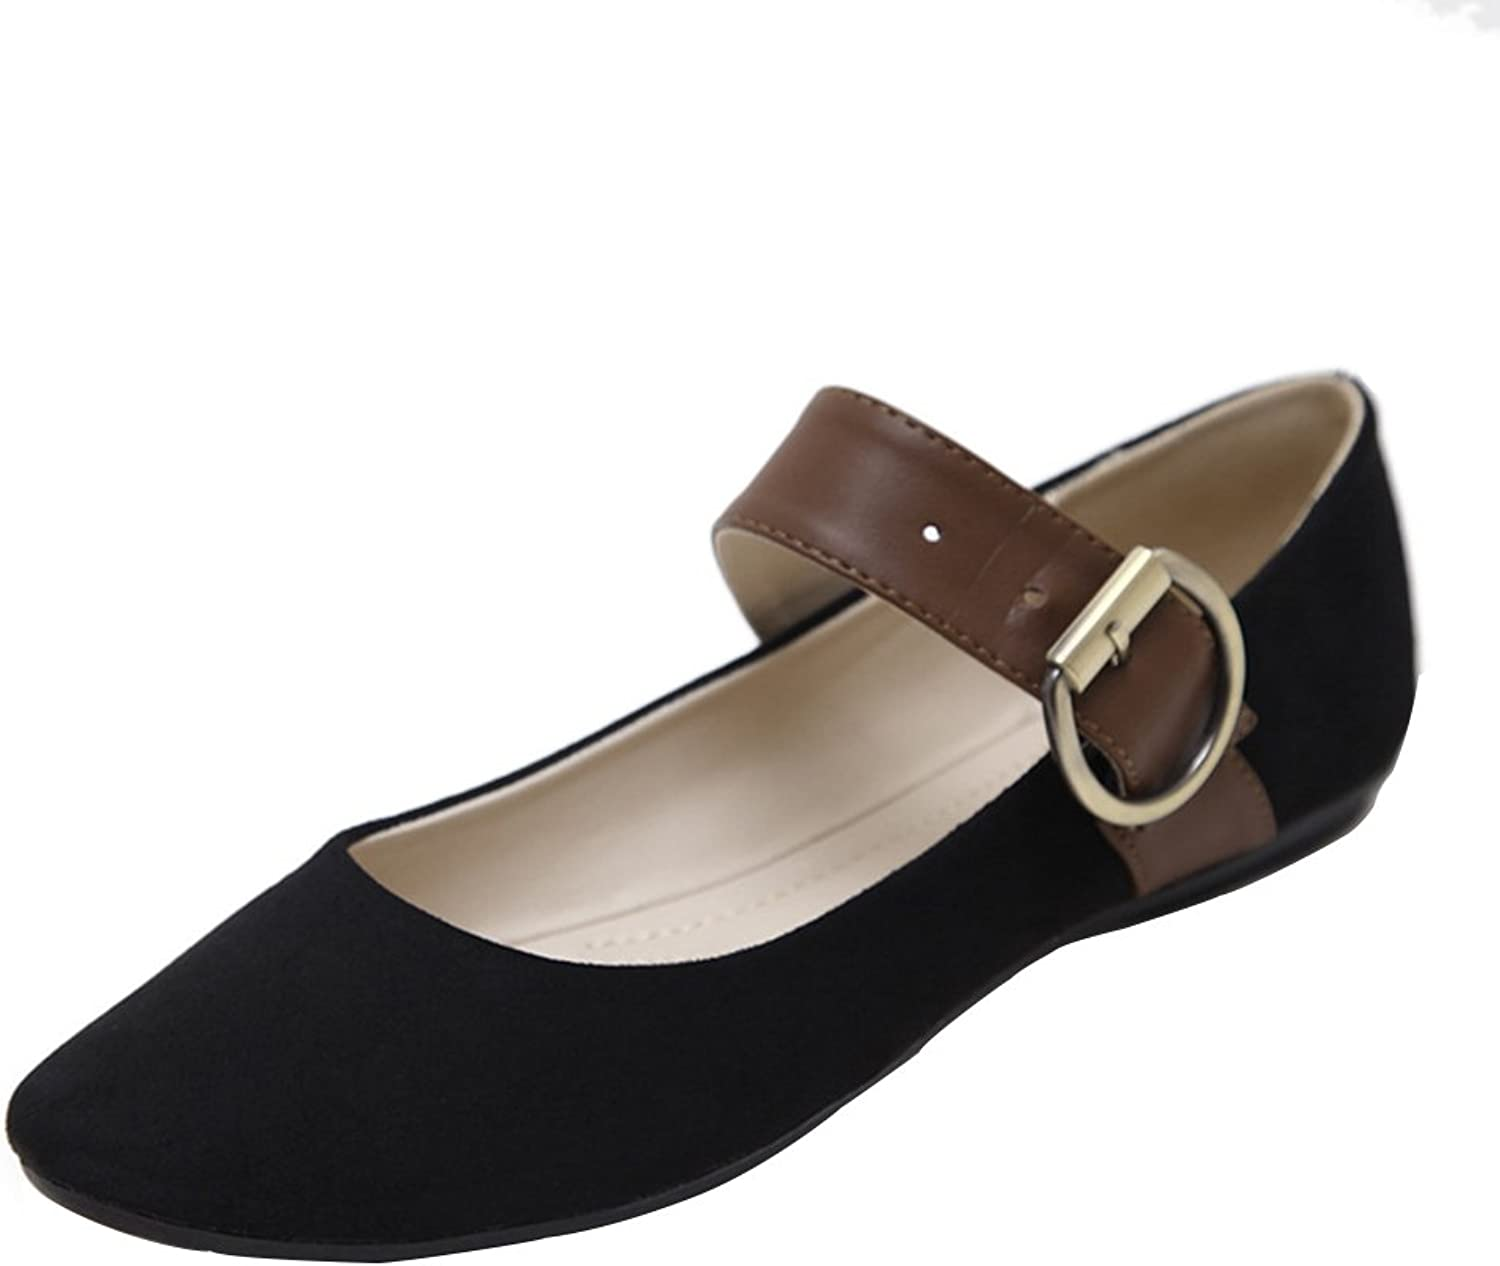 Kyle Walsh Pa Round Toe Ballet Flats Soft Comfort Buckle Slip On